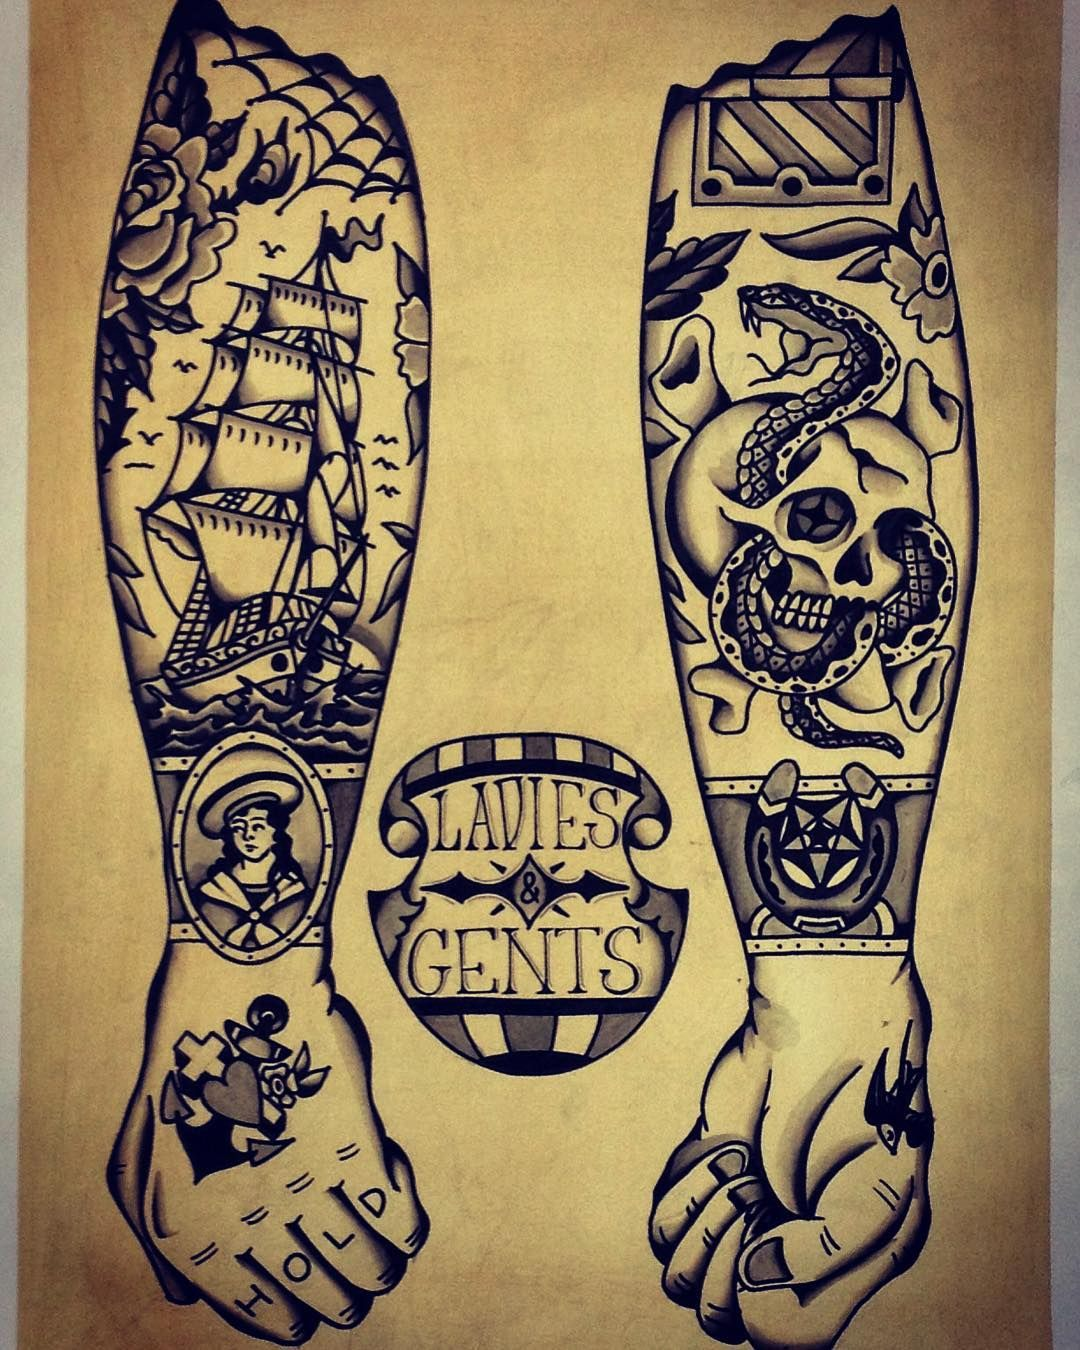 Nice name tattoo designs - Name Tattoo Designs Finding A Good Name Tattoo Design Should Be Something Fun And Exciting To Do